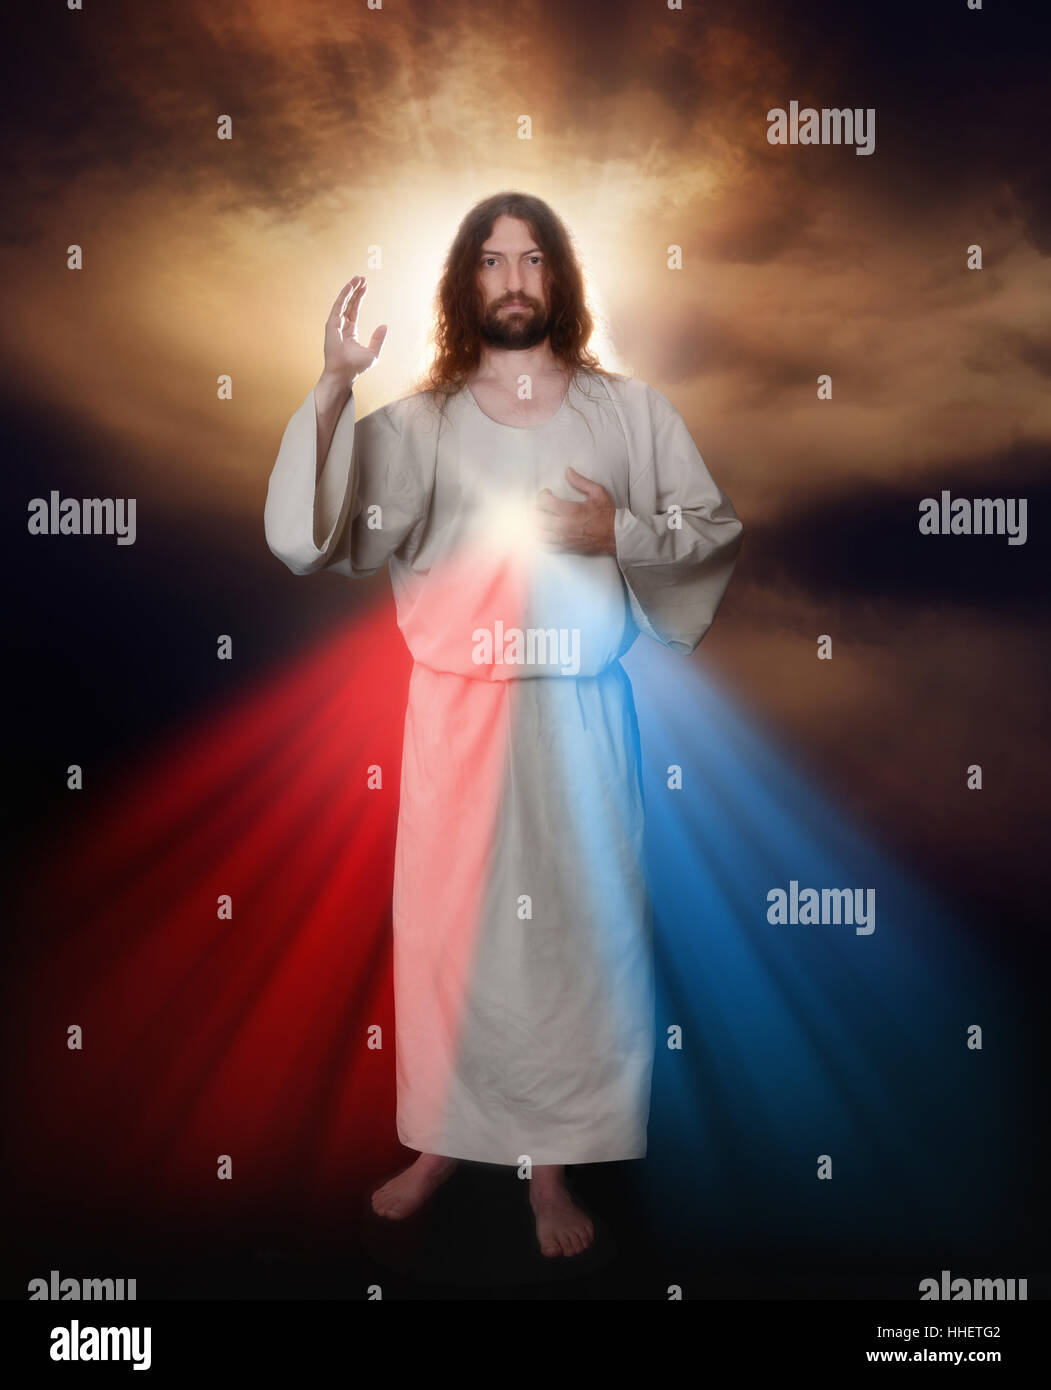 catholic, catholicism, blessing, redemption, saviour, mercy, jesus, catholic, - Stock Image